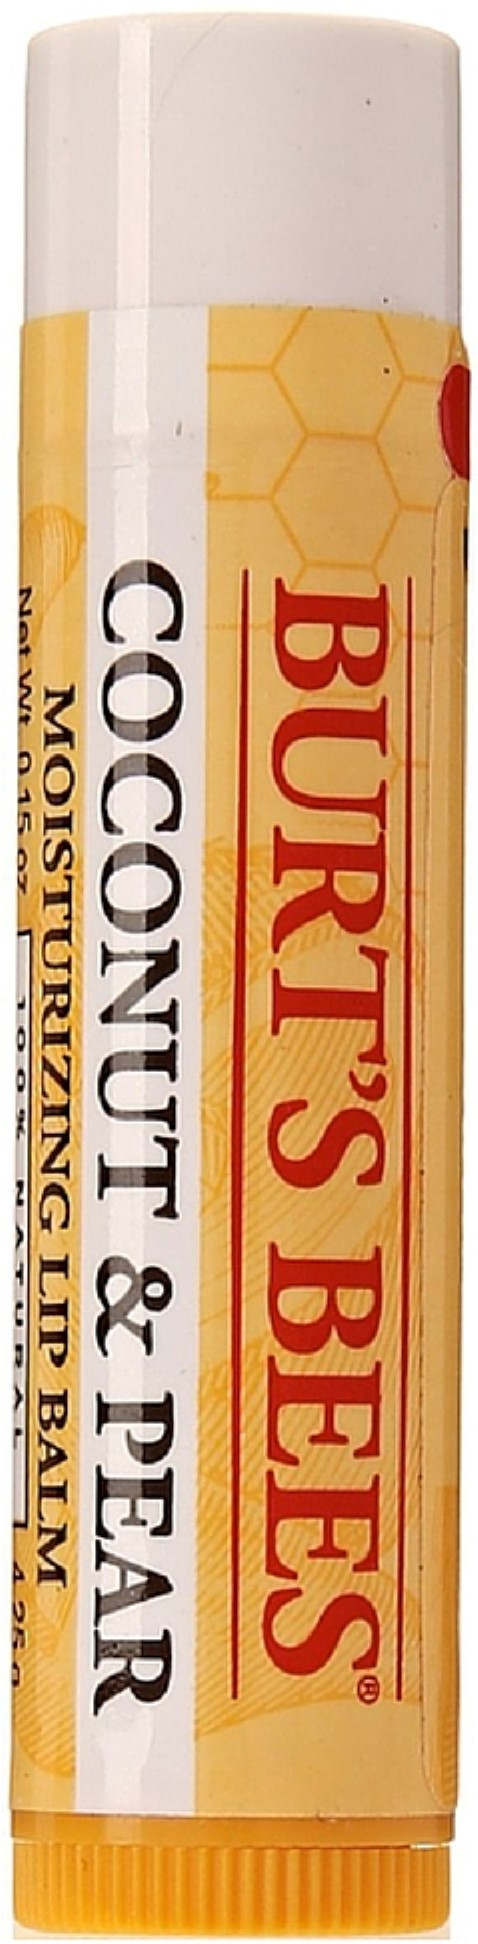 Burts Bees Lip Balm, Coconut & Pear 0.15 oz (Pack of 3) Chamomile Cleansing Lotion Facial Cleansing Cream Wash For Sensitive Skin